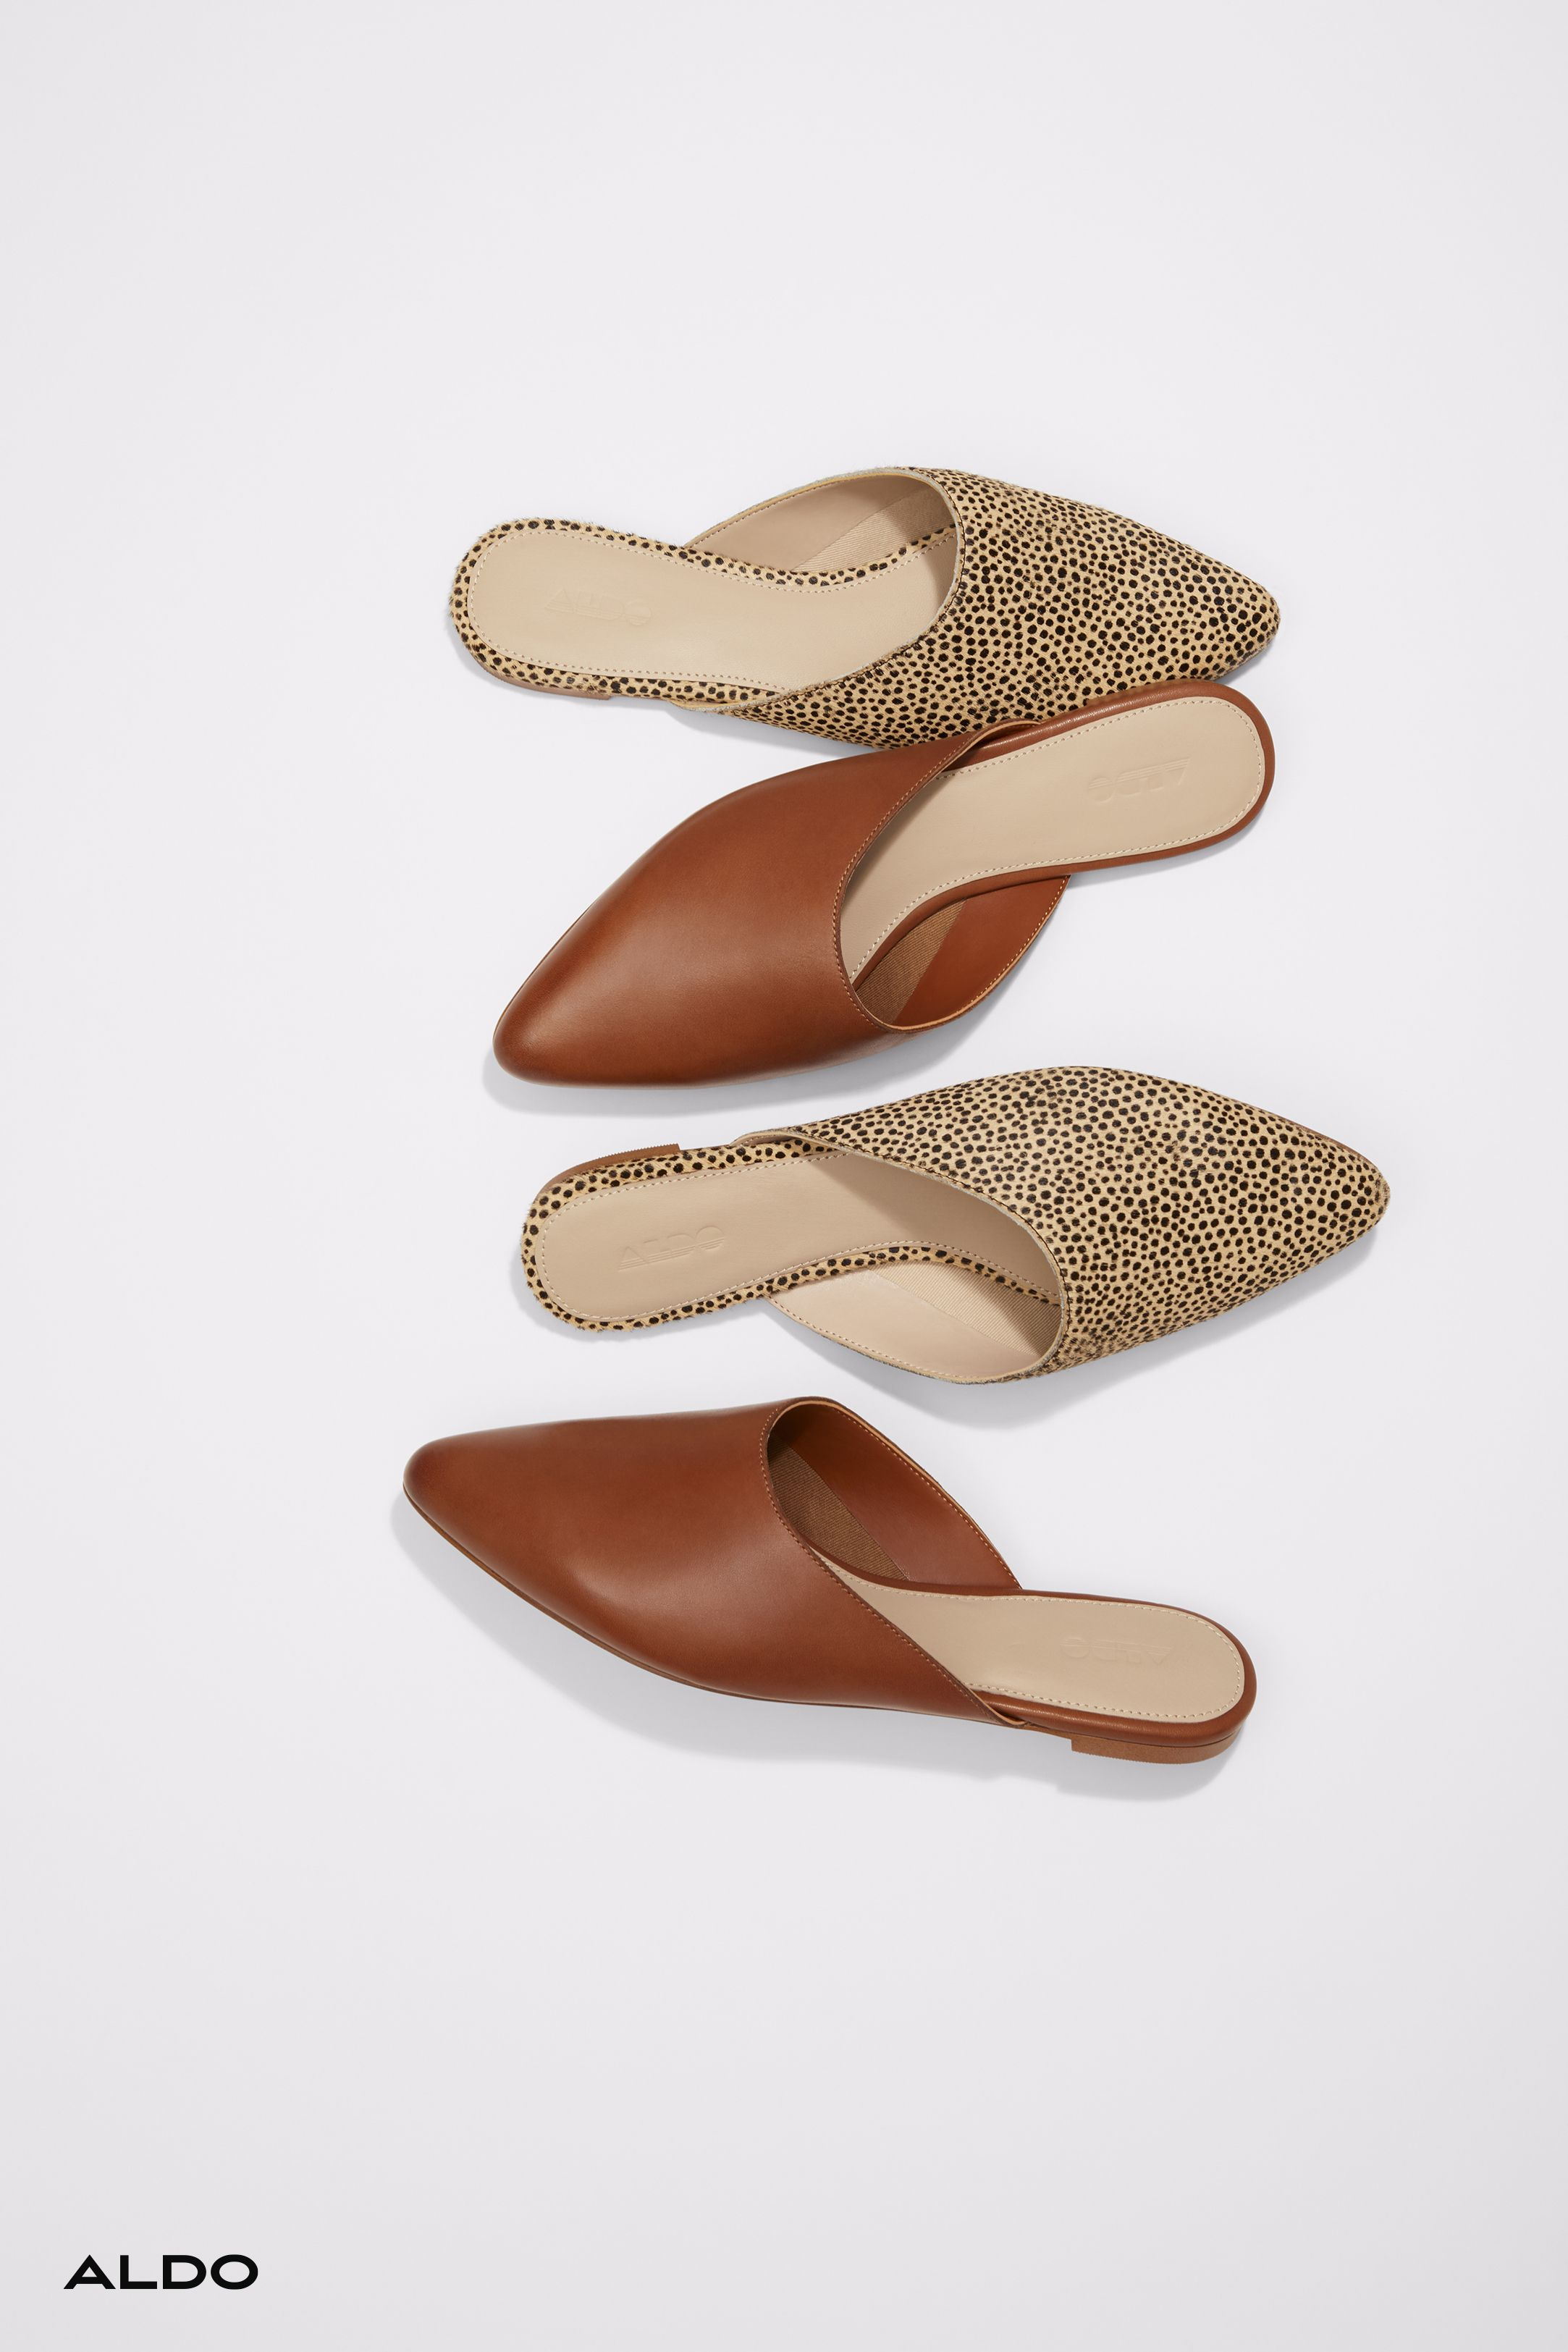 Slip-on flats from Aldo shoes   Womens